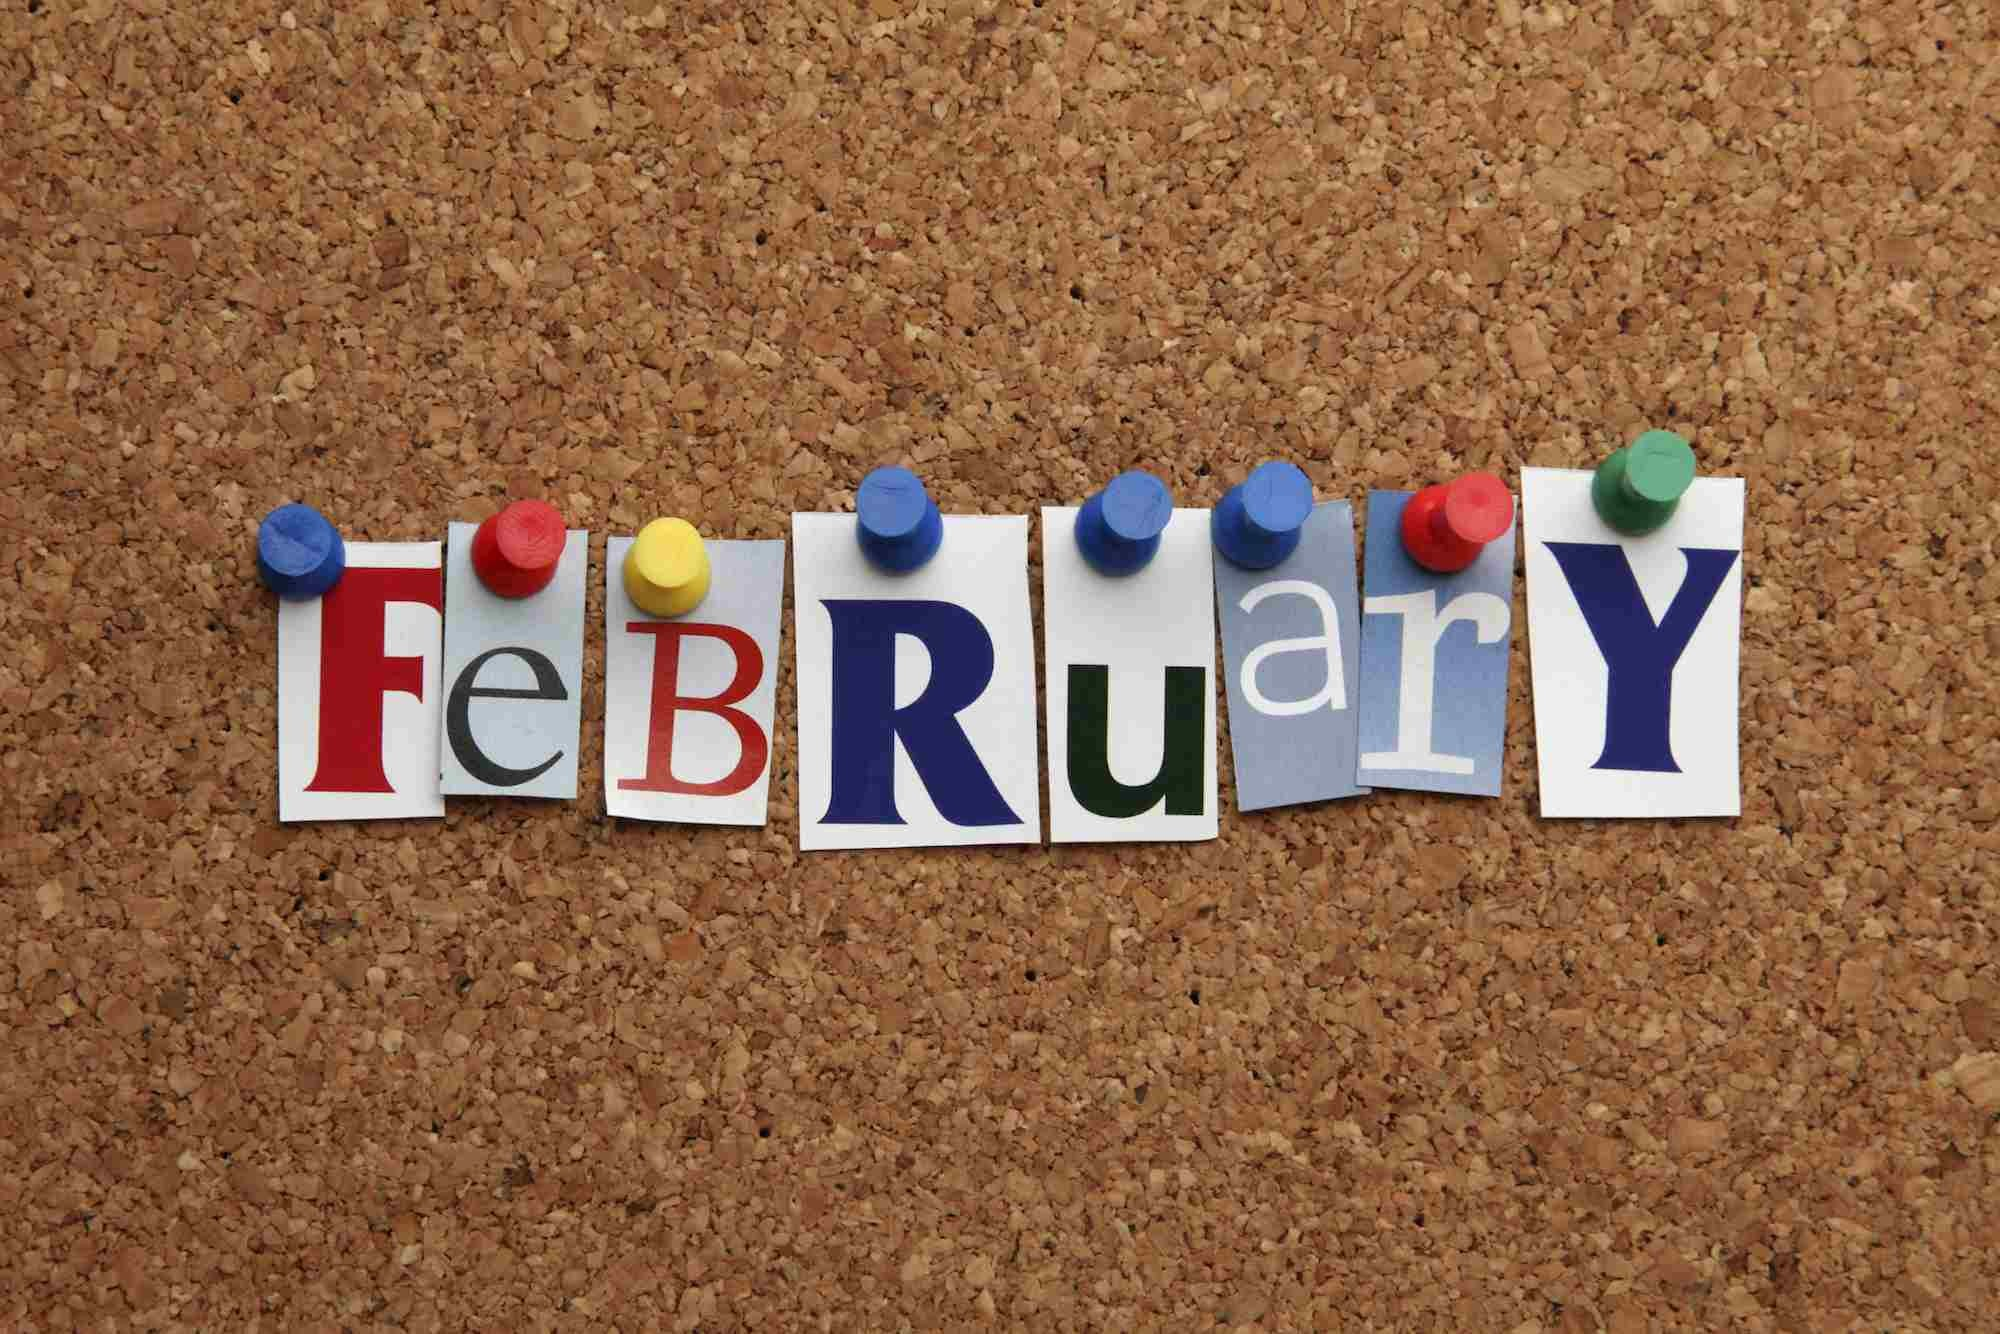 March Reading Month Calendar Activities Más Recientes Special Days Calendar for Occasions to Celebrate Of March Reading Month Calendar Activities Más Caliente Calendar Of events